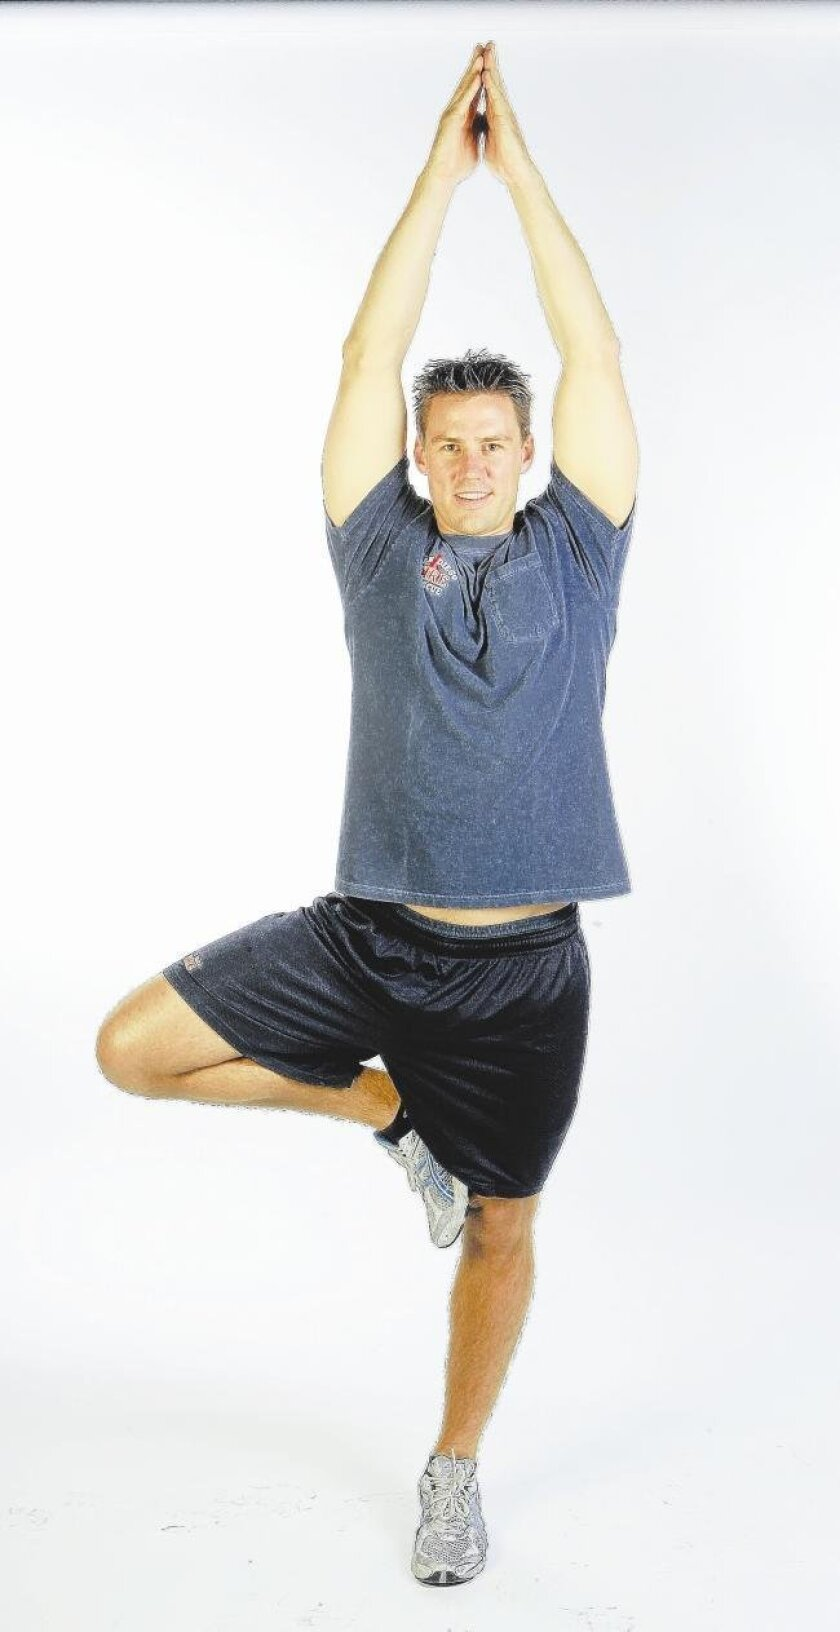 San Diego fire engineer Stephen Laughlin works on core stability, balance and hip flexibility as he demonstrates a traditional yoga tree pose.